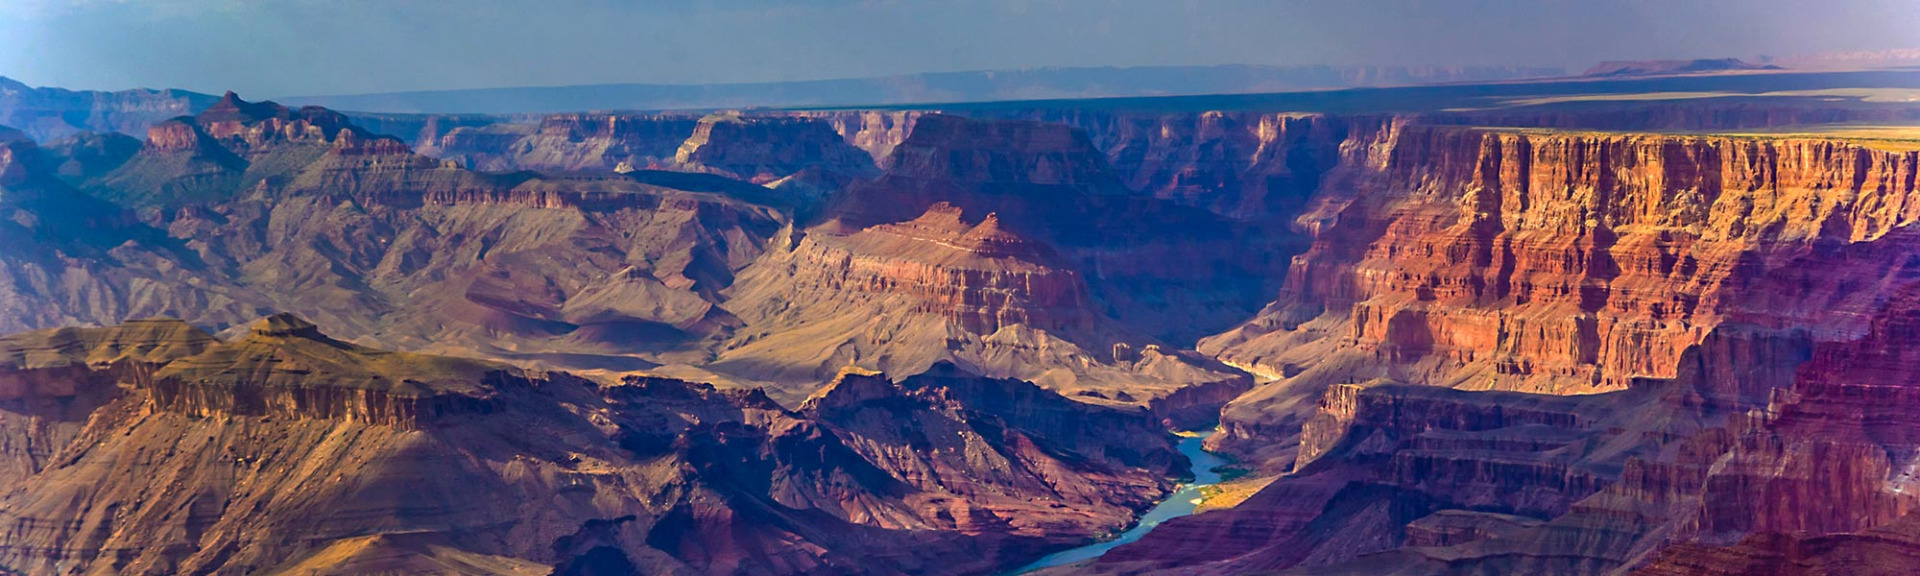 View of the Grand Canyon at Sunset